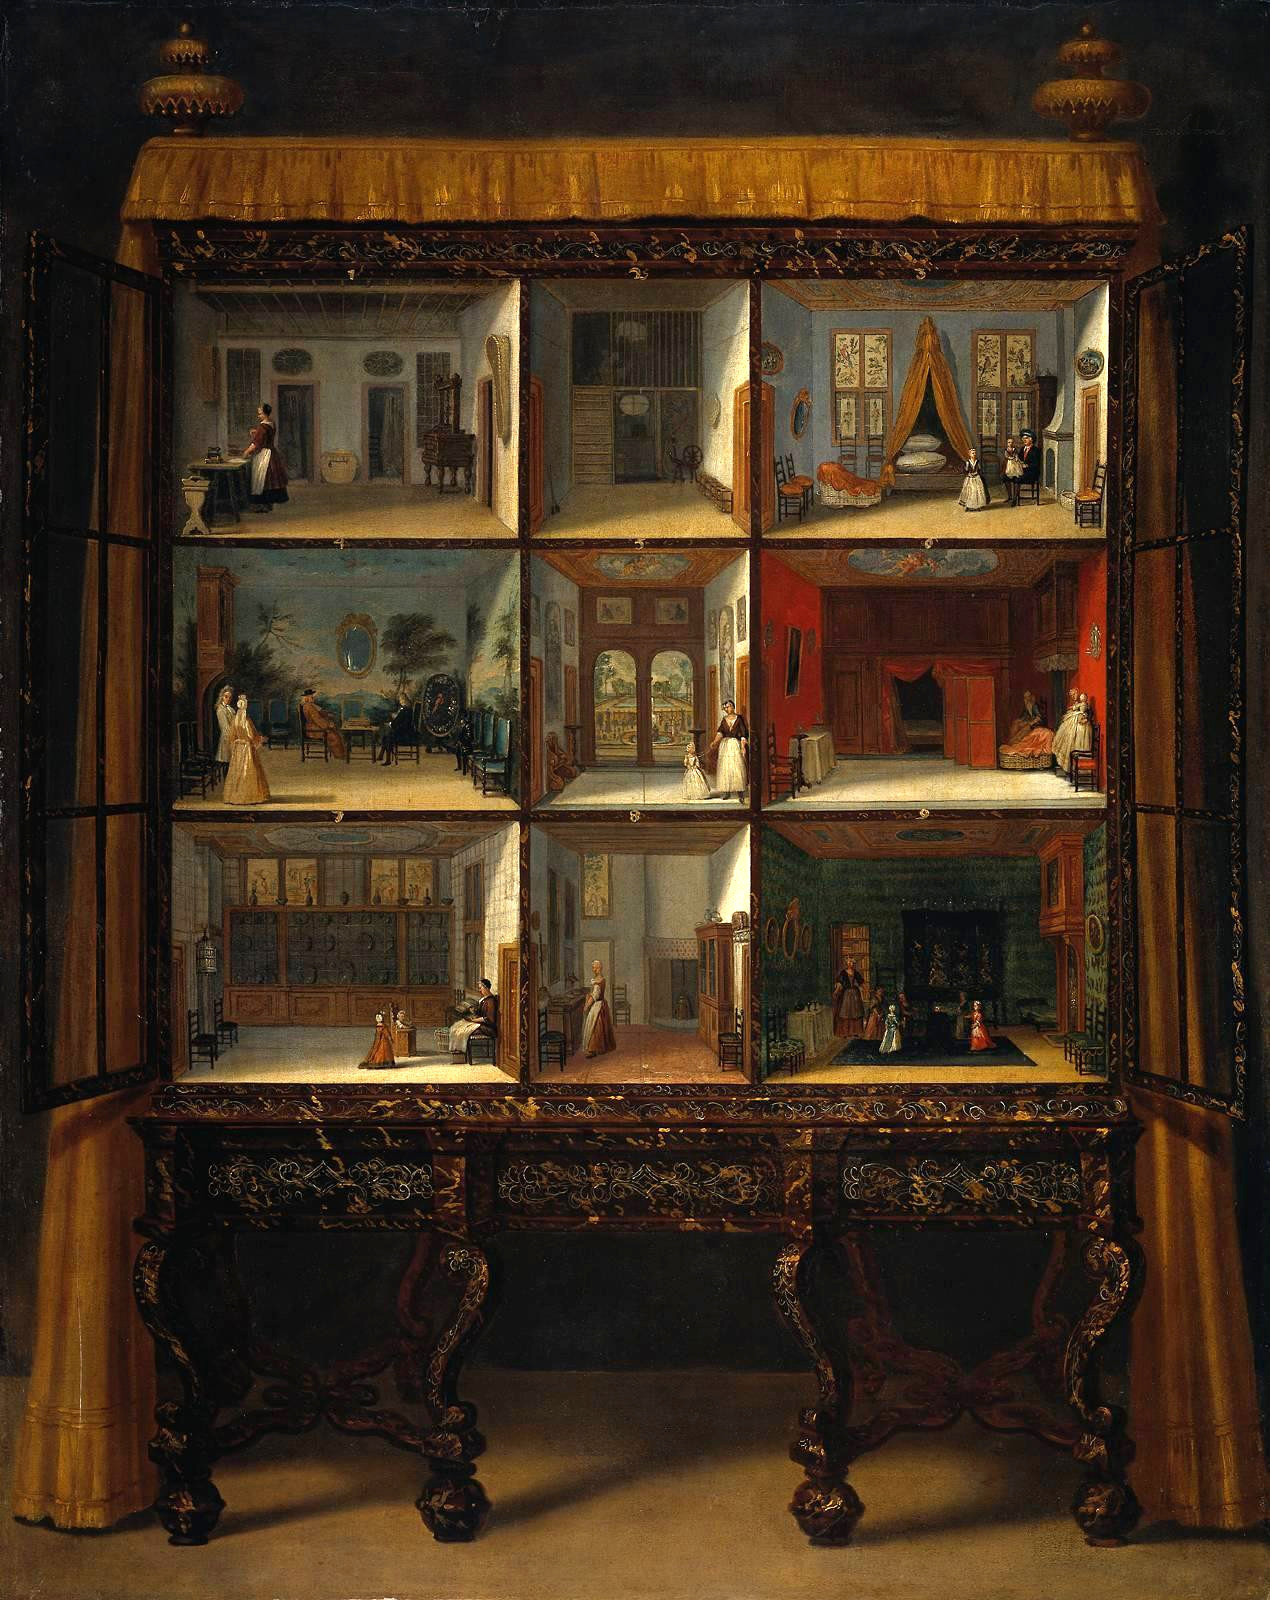 Dollhouse of Petronella Ortman by Jacob Appel, c. 1710